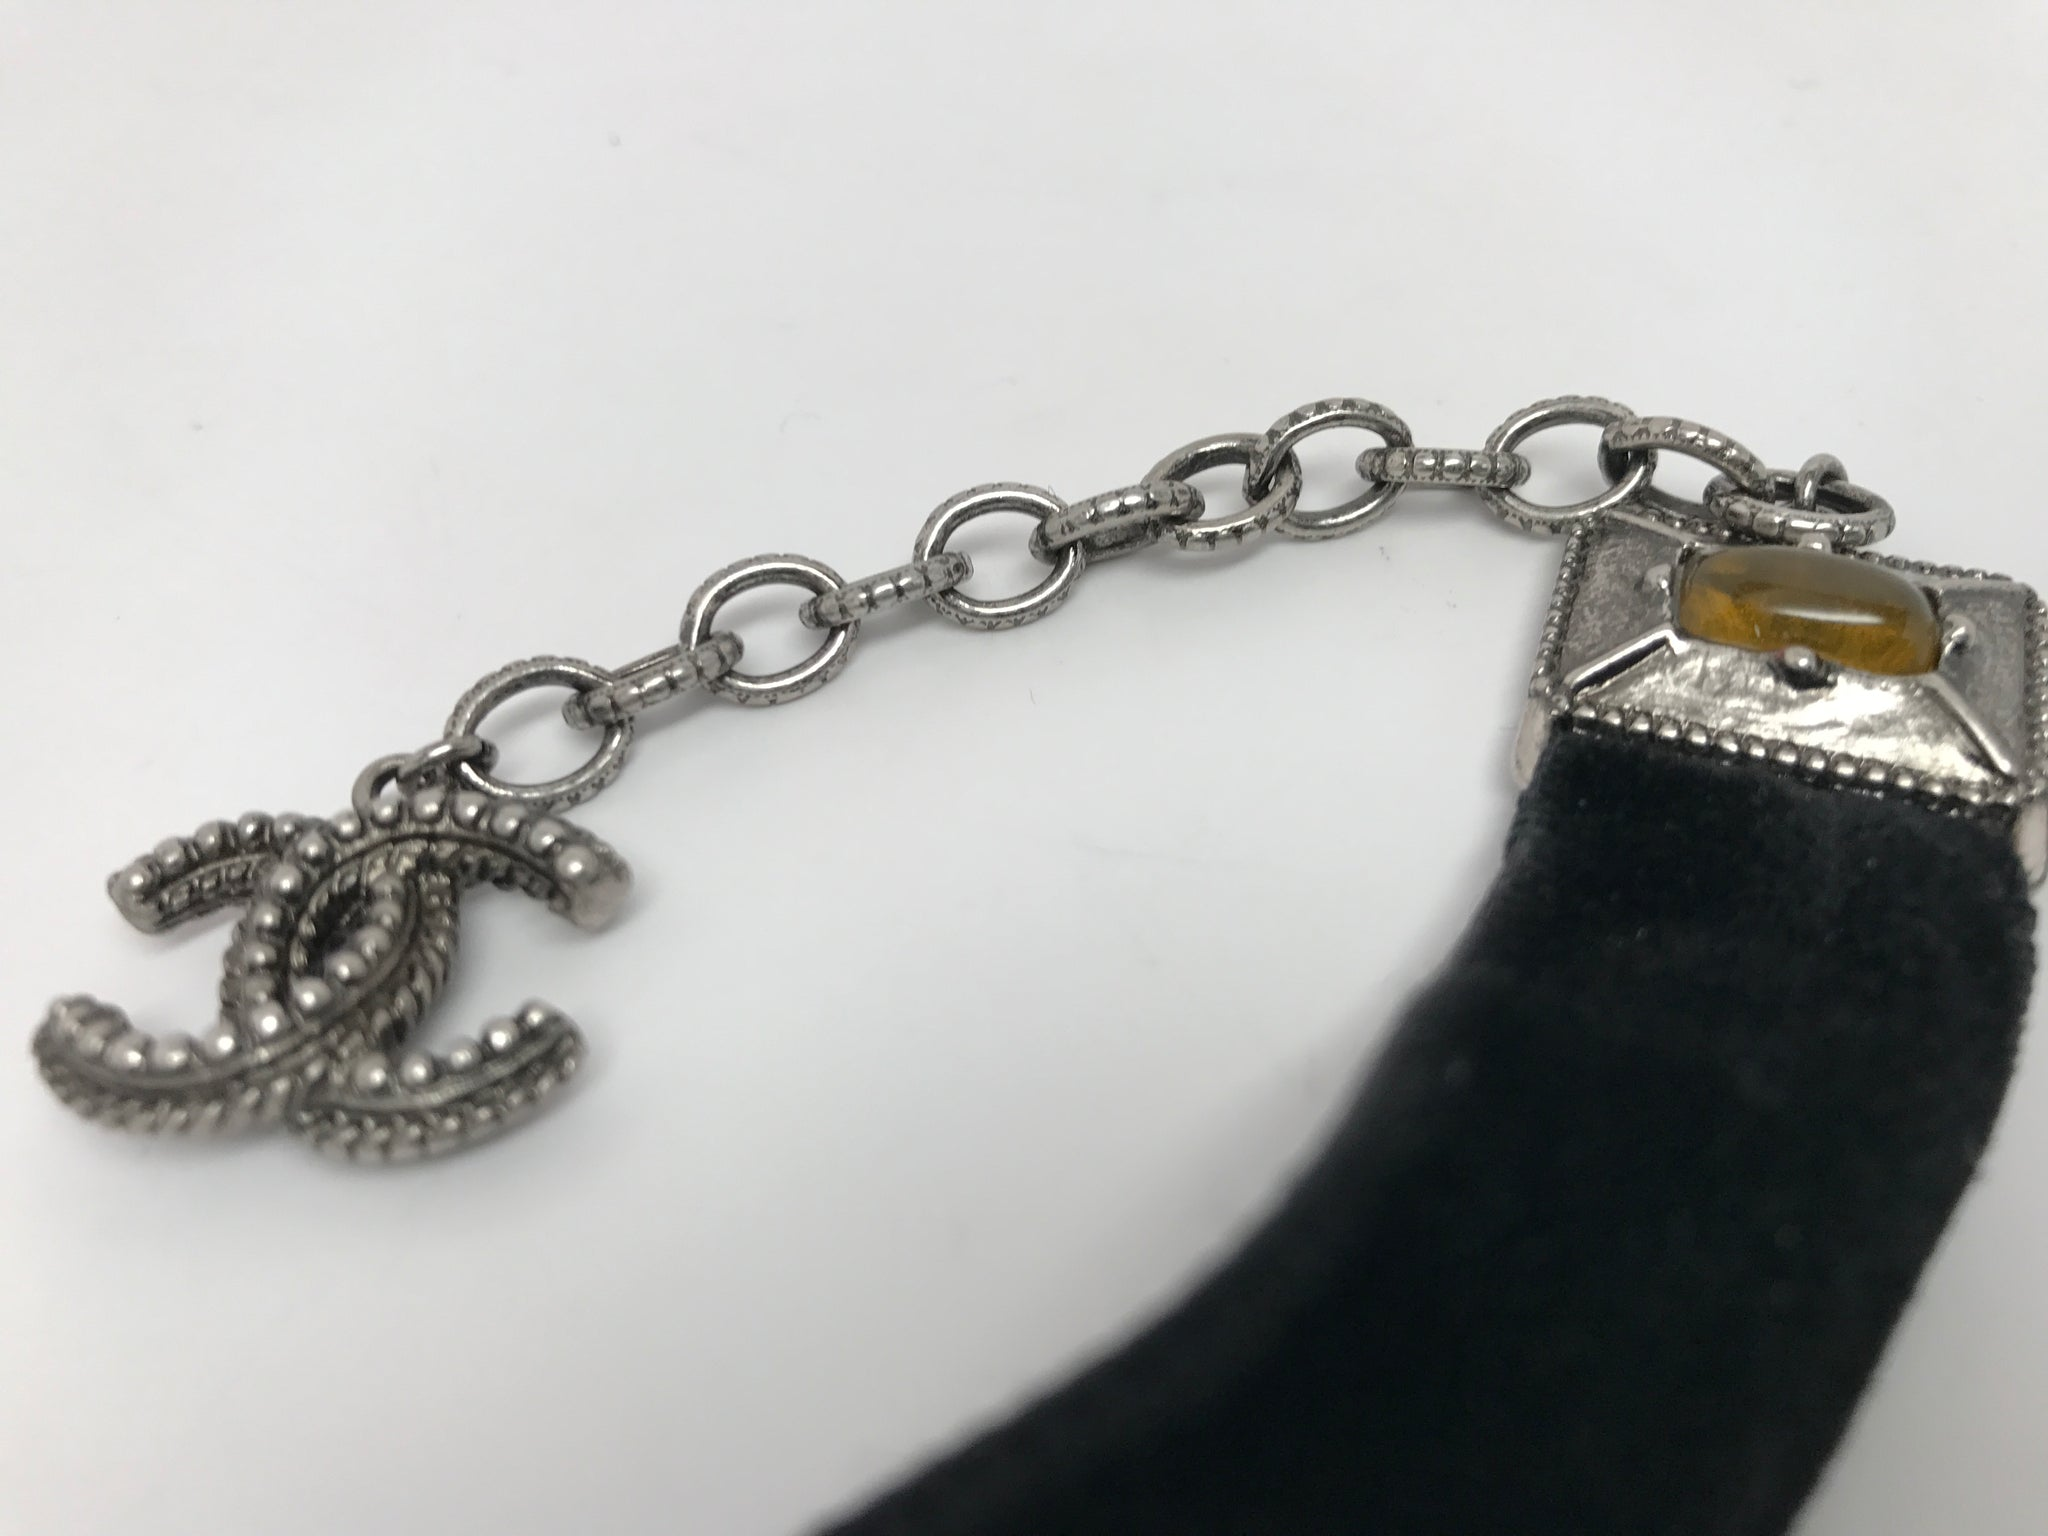 CHANEL METAL AND VELVET CHOKER NECKLACE